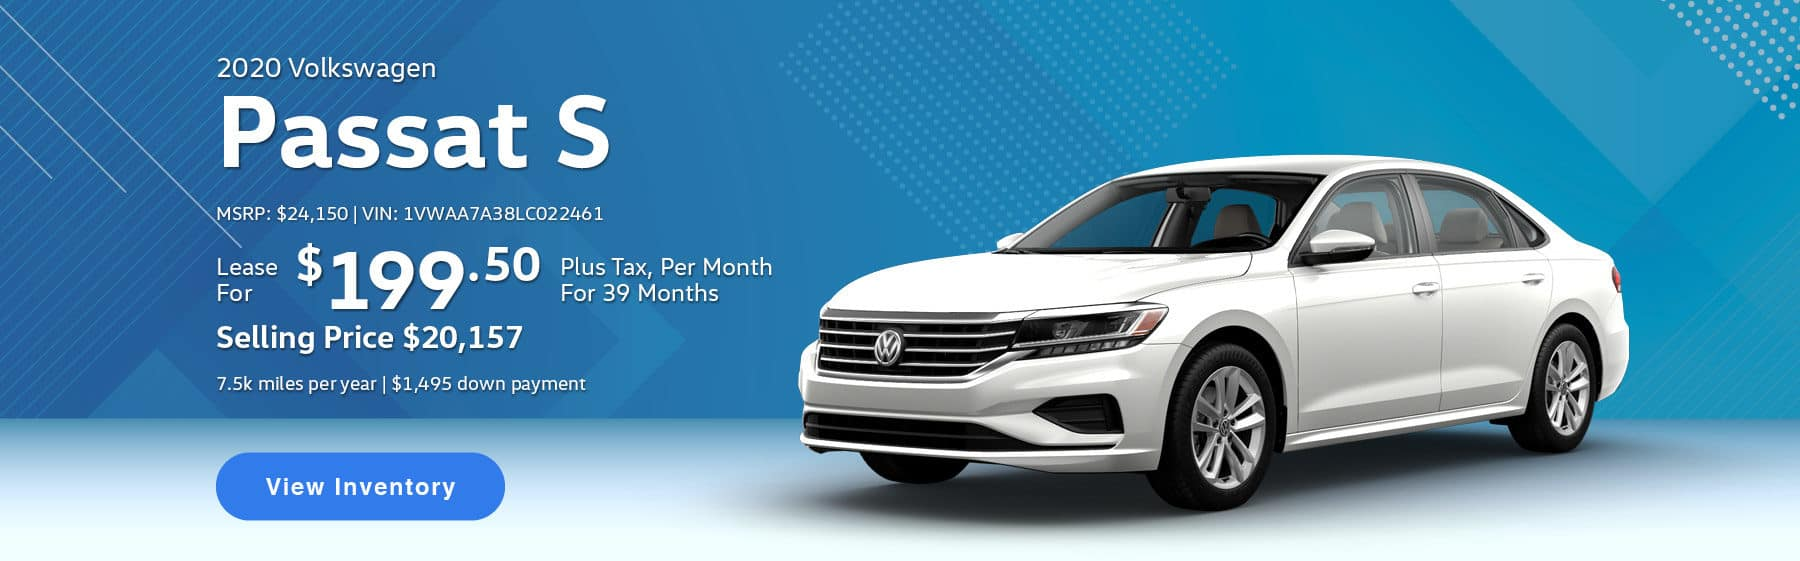 Lease the 2020 Passat S for $199.50 per month, plus tax for 39 months.